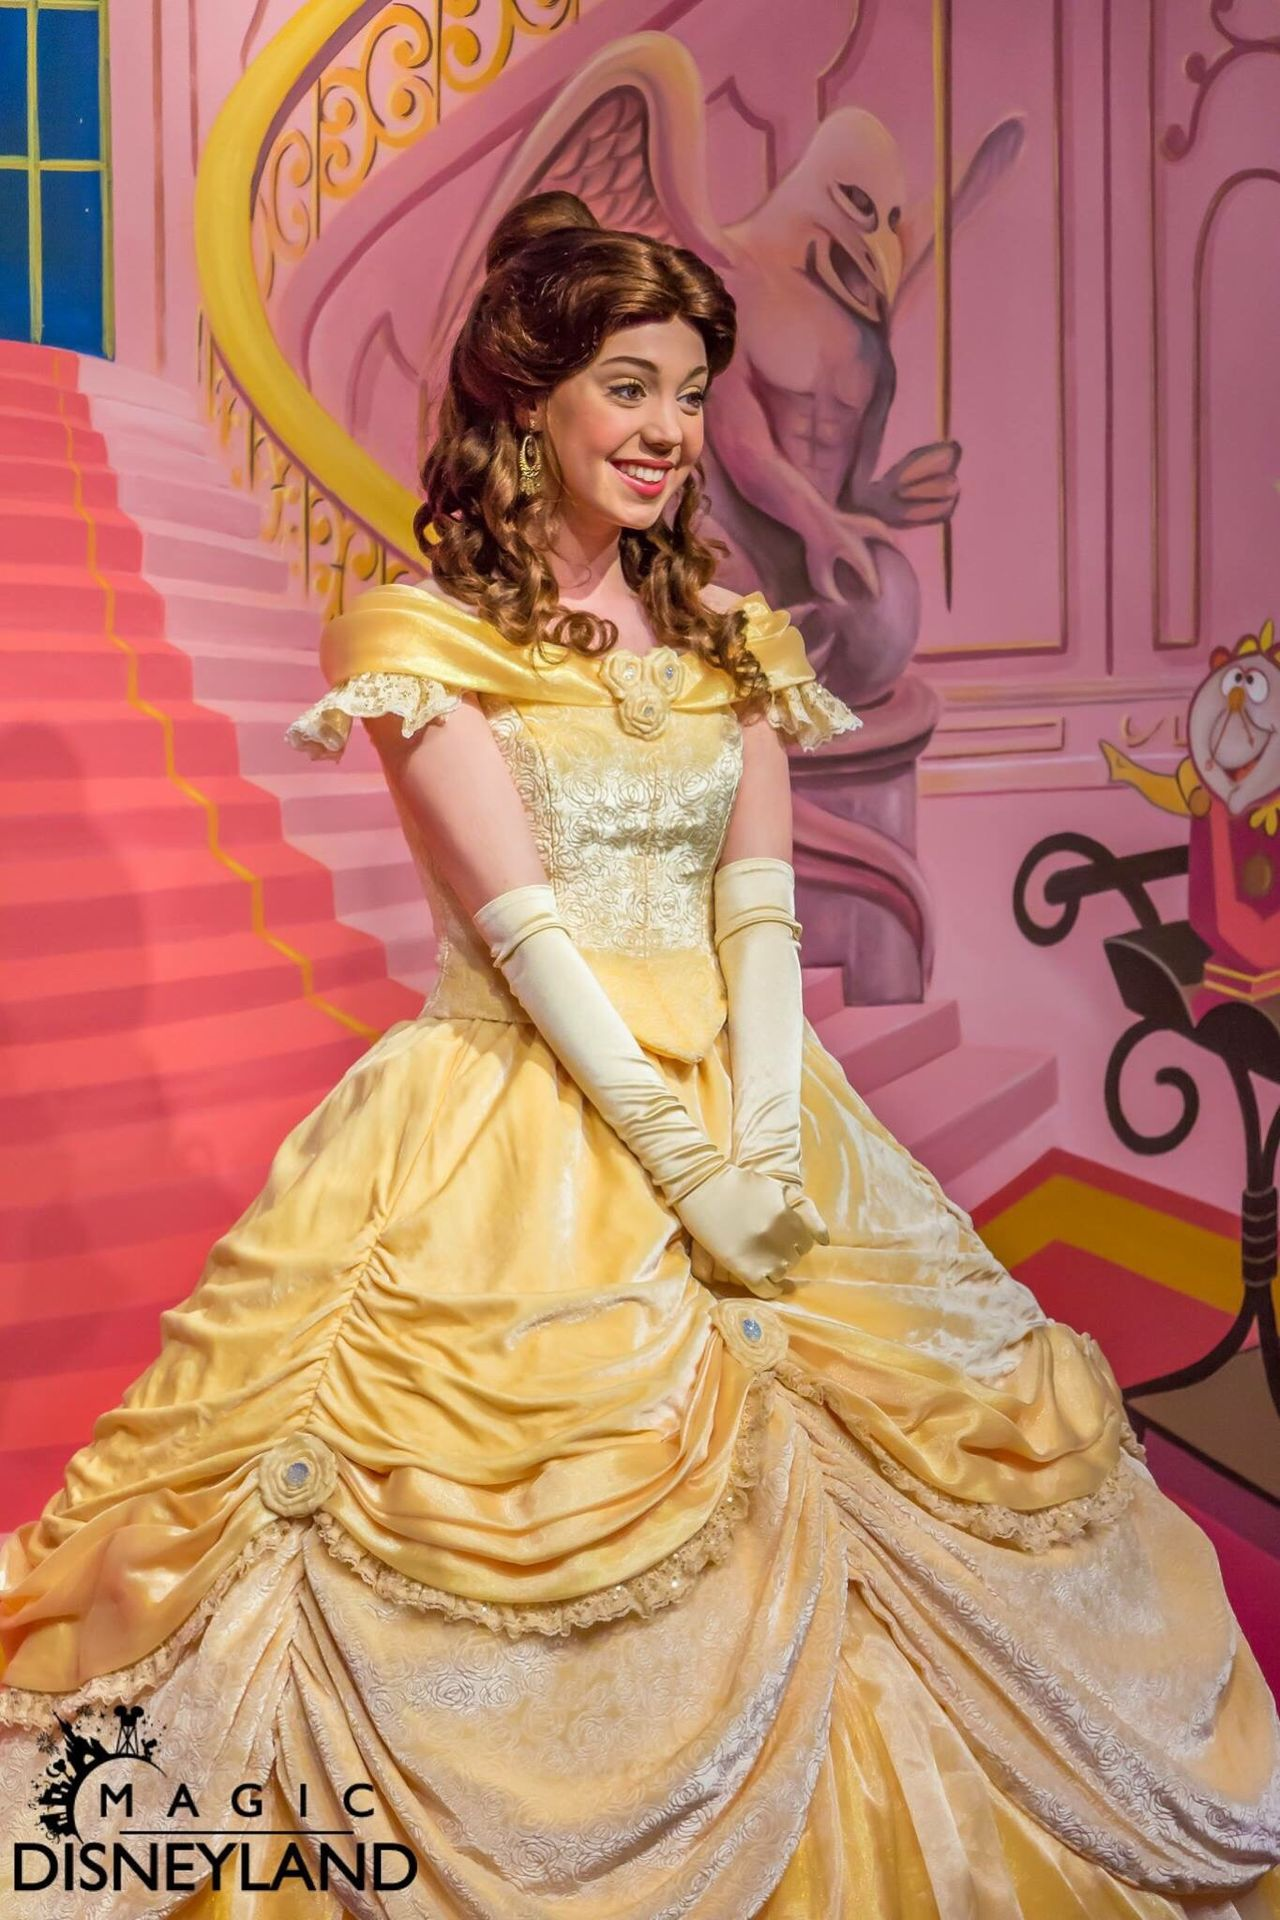 One Person One Woman Only Beautiful Woman Curly Hair 25thanniversary Disneyland Paris Disneyland Disney Disneyland Resort Paris Amusement Park